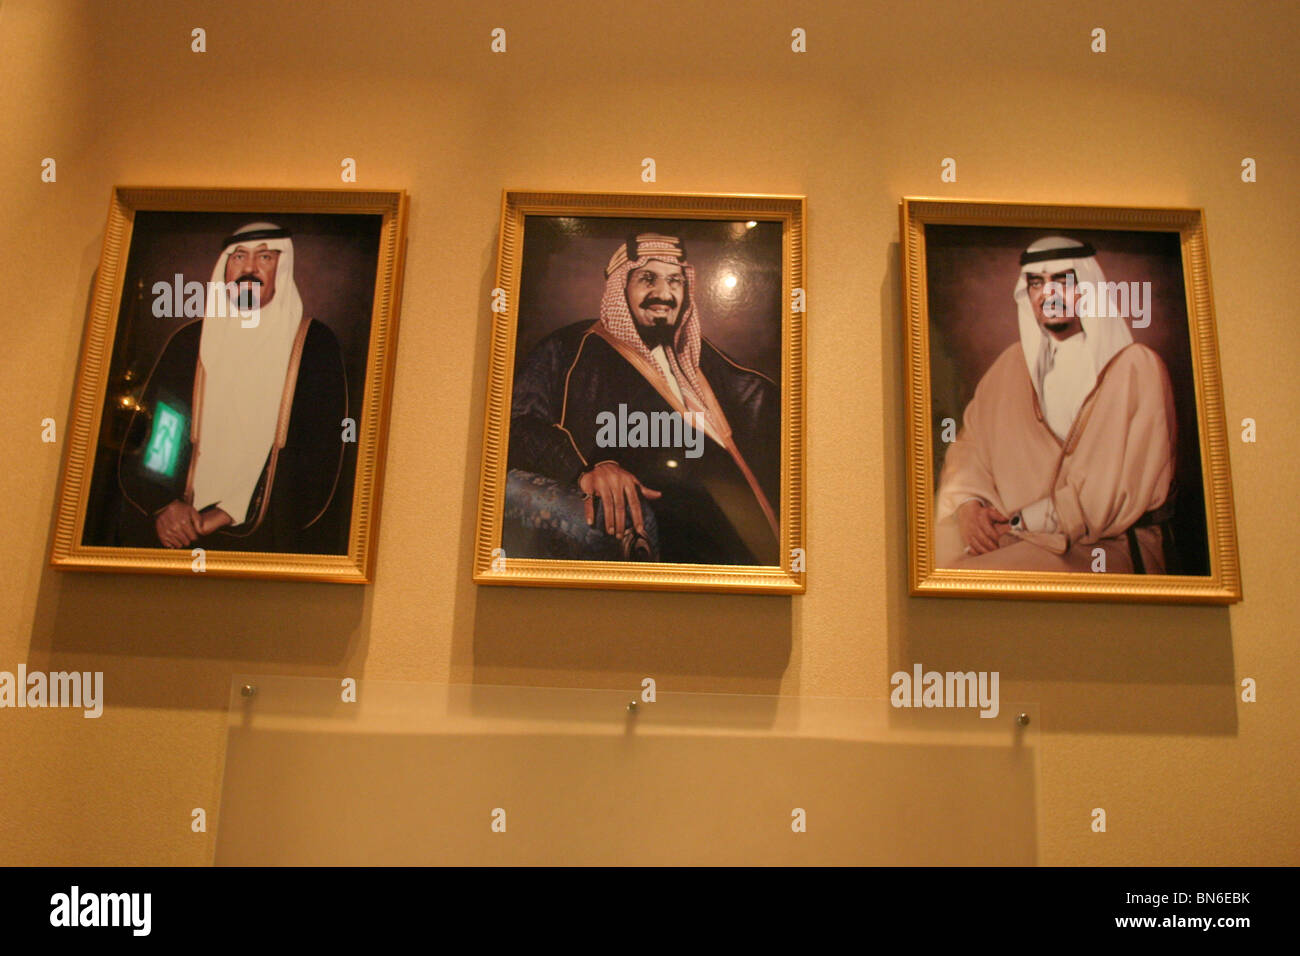 Portraits of Saudi Arabian leaders, at World Expo 2005, Aichi, Japan. 19.03.05 - Stock Image